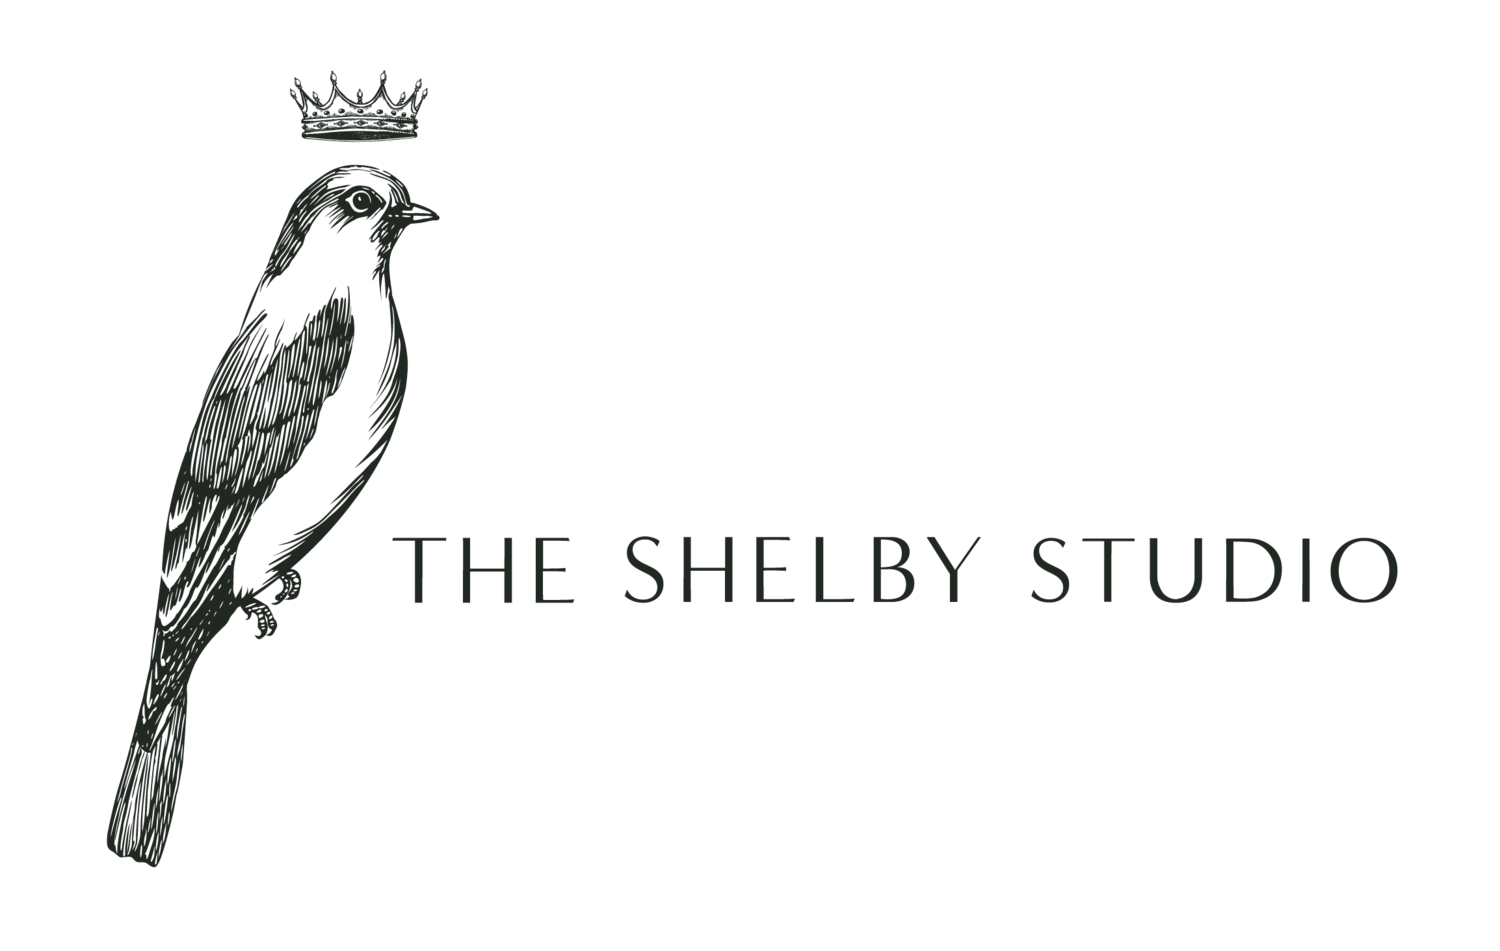 The Shelby Studio